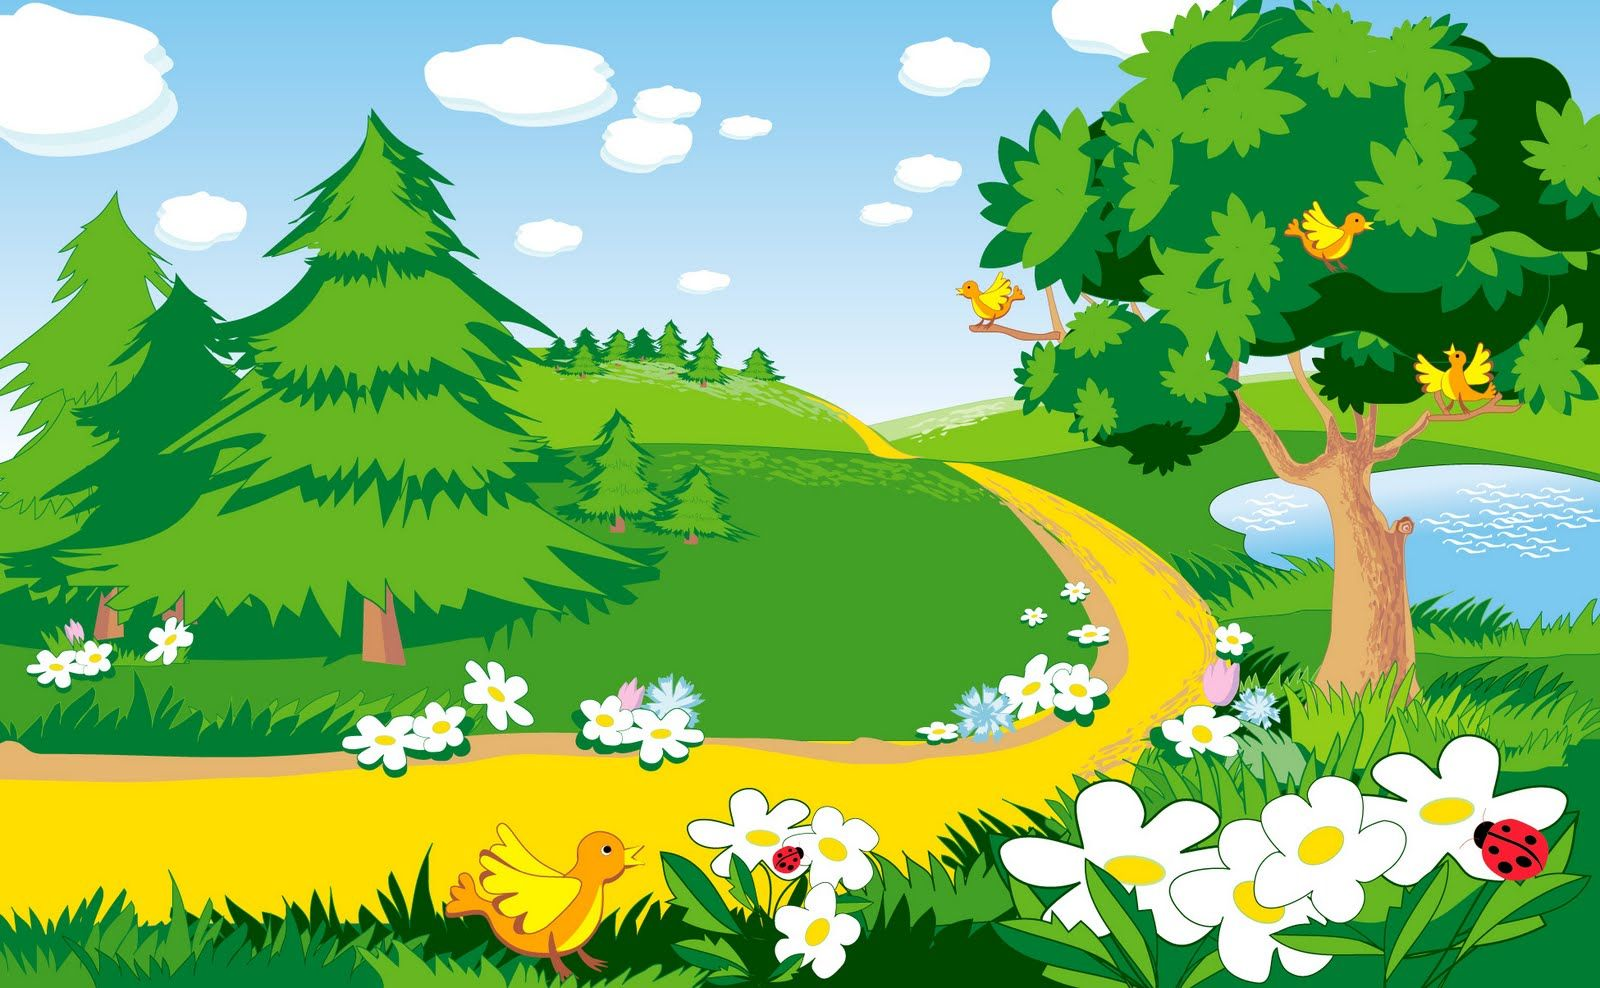 Fondos Para Fotomontajes Infantiles Gratis And Post Fondos Para Landscape Background Landscape Scenery Forest Background